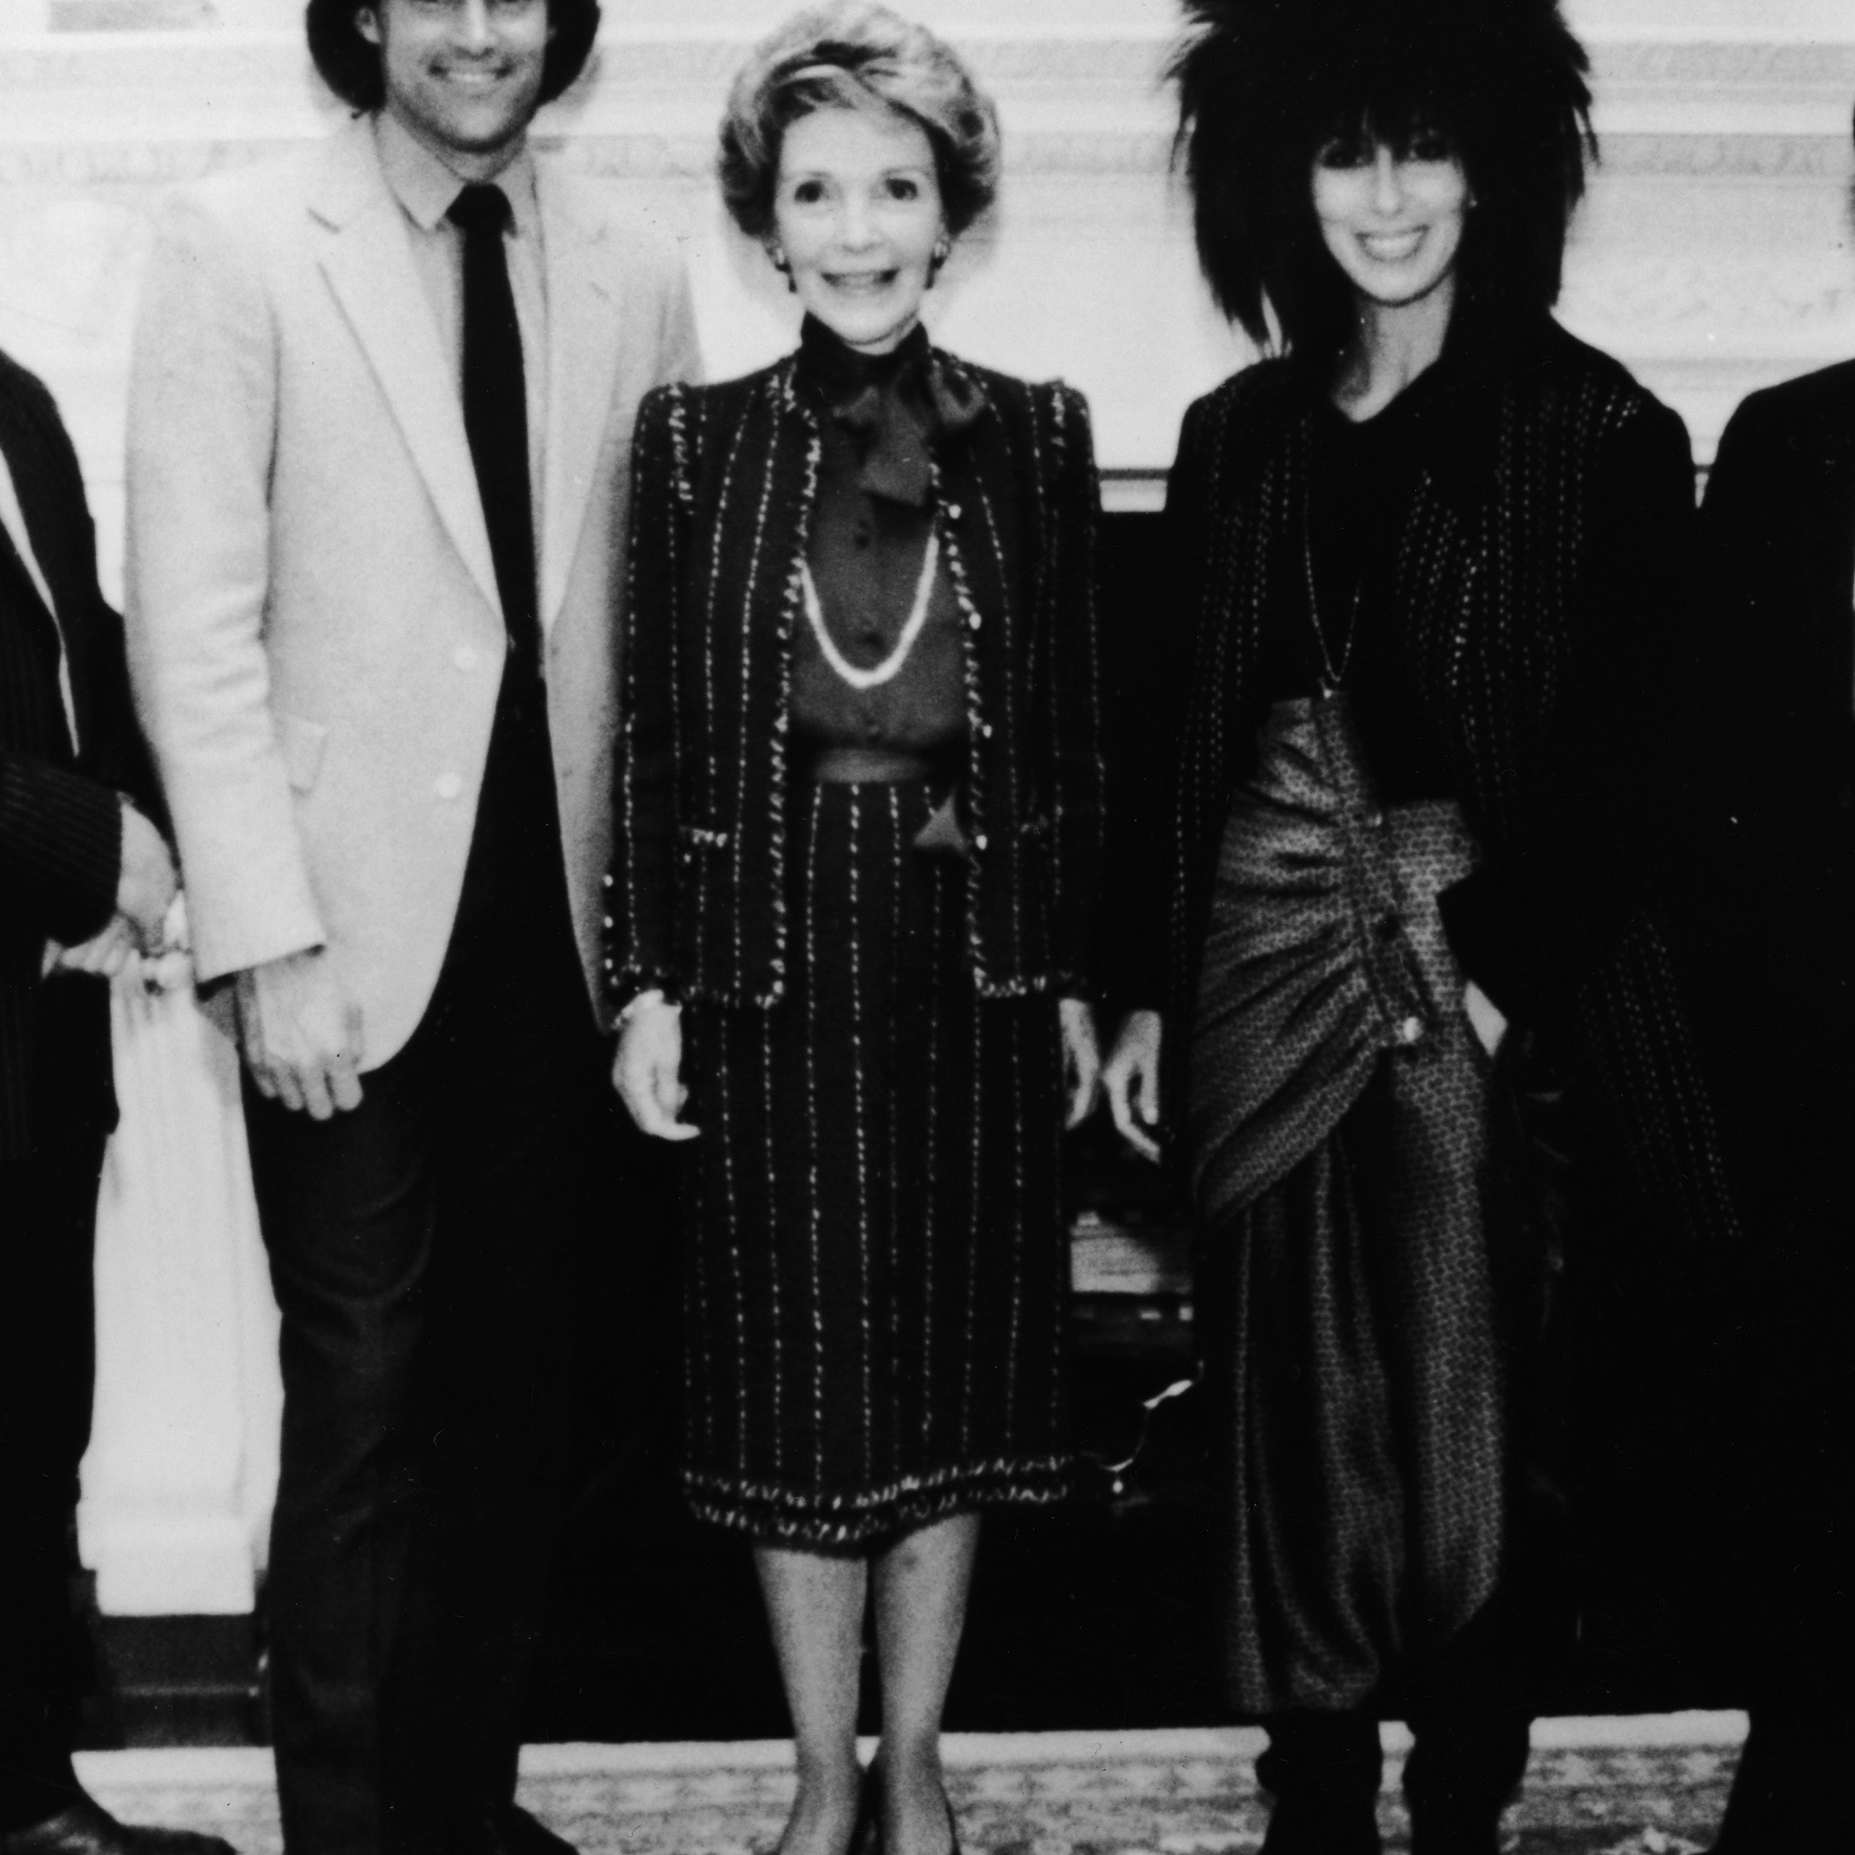 Bruce, Nancy, and Cher